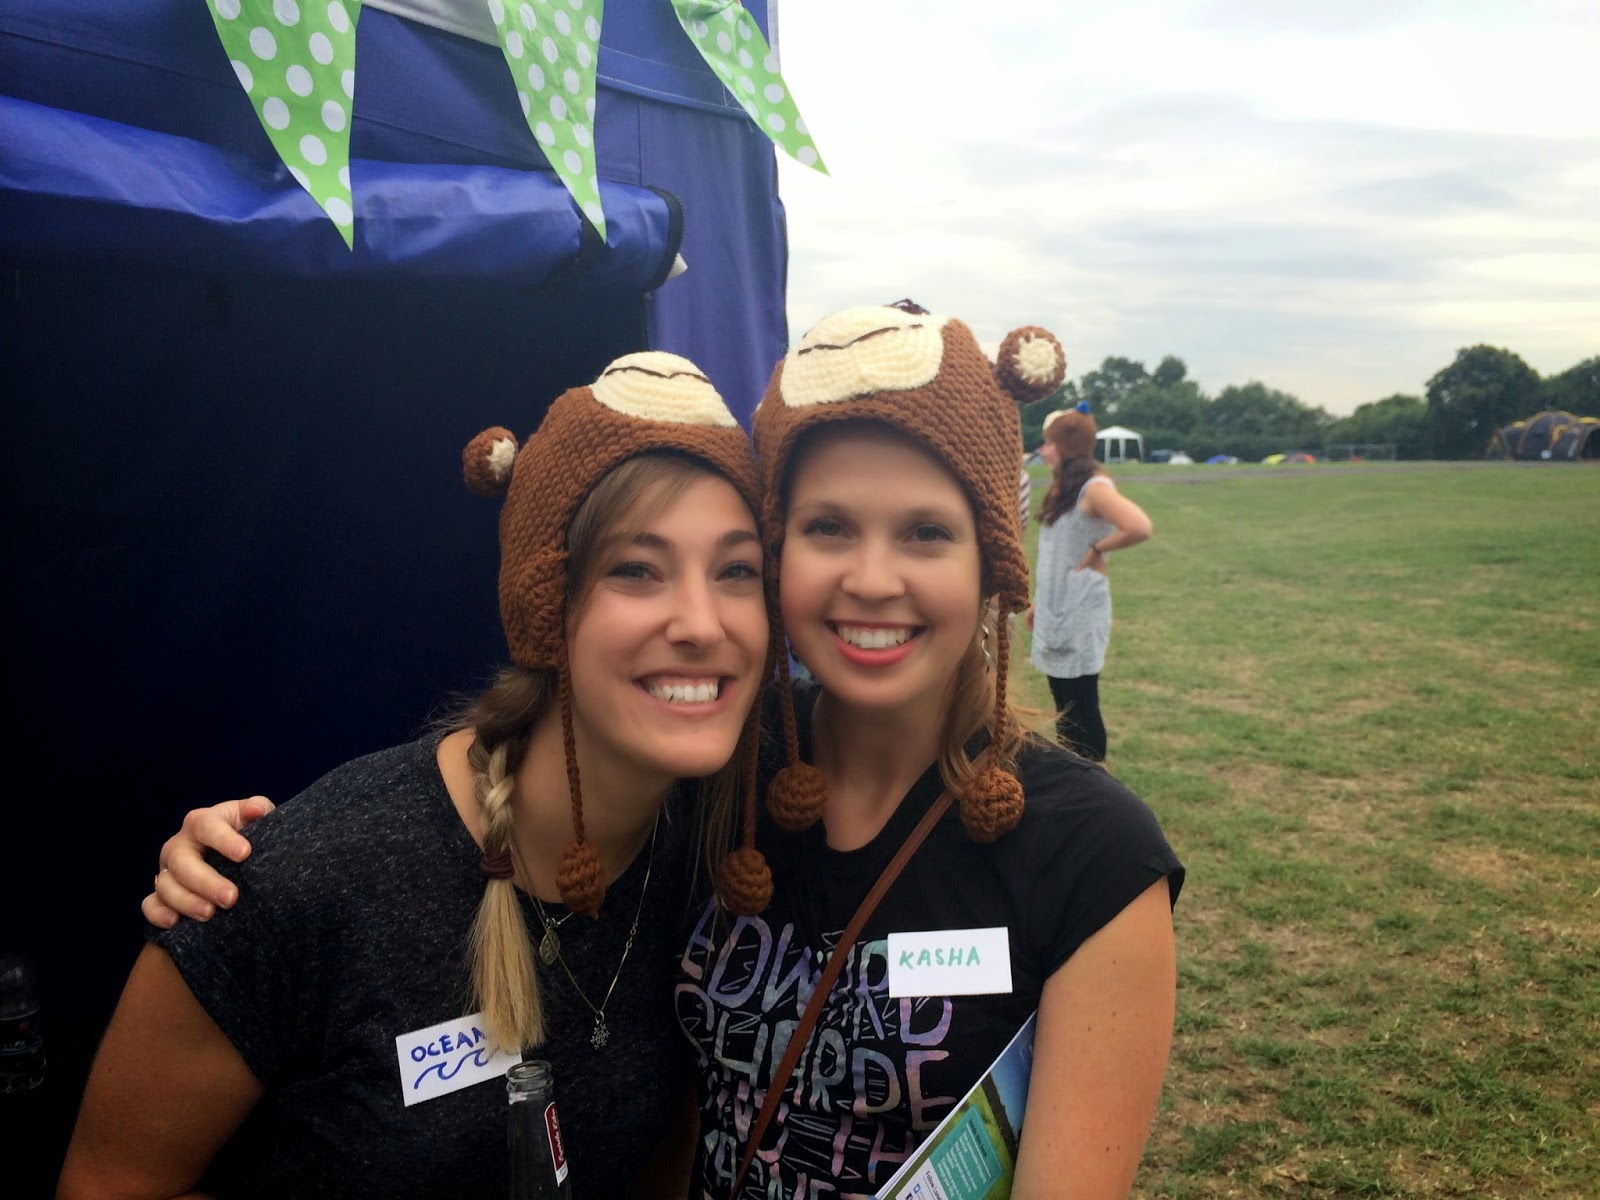 Ocean and Kasha enjoying their Mailchimp hats!